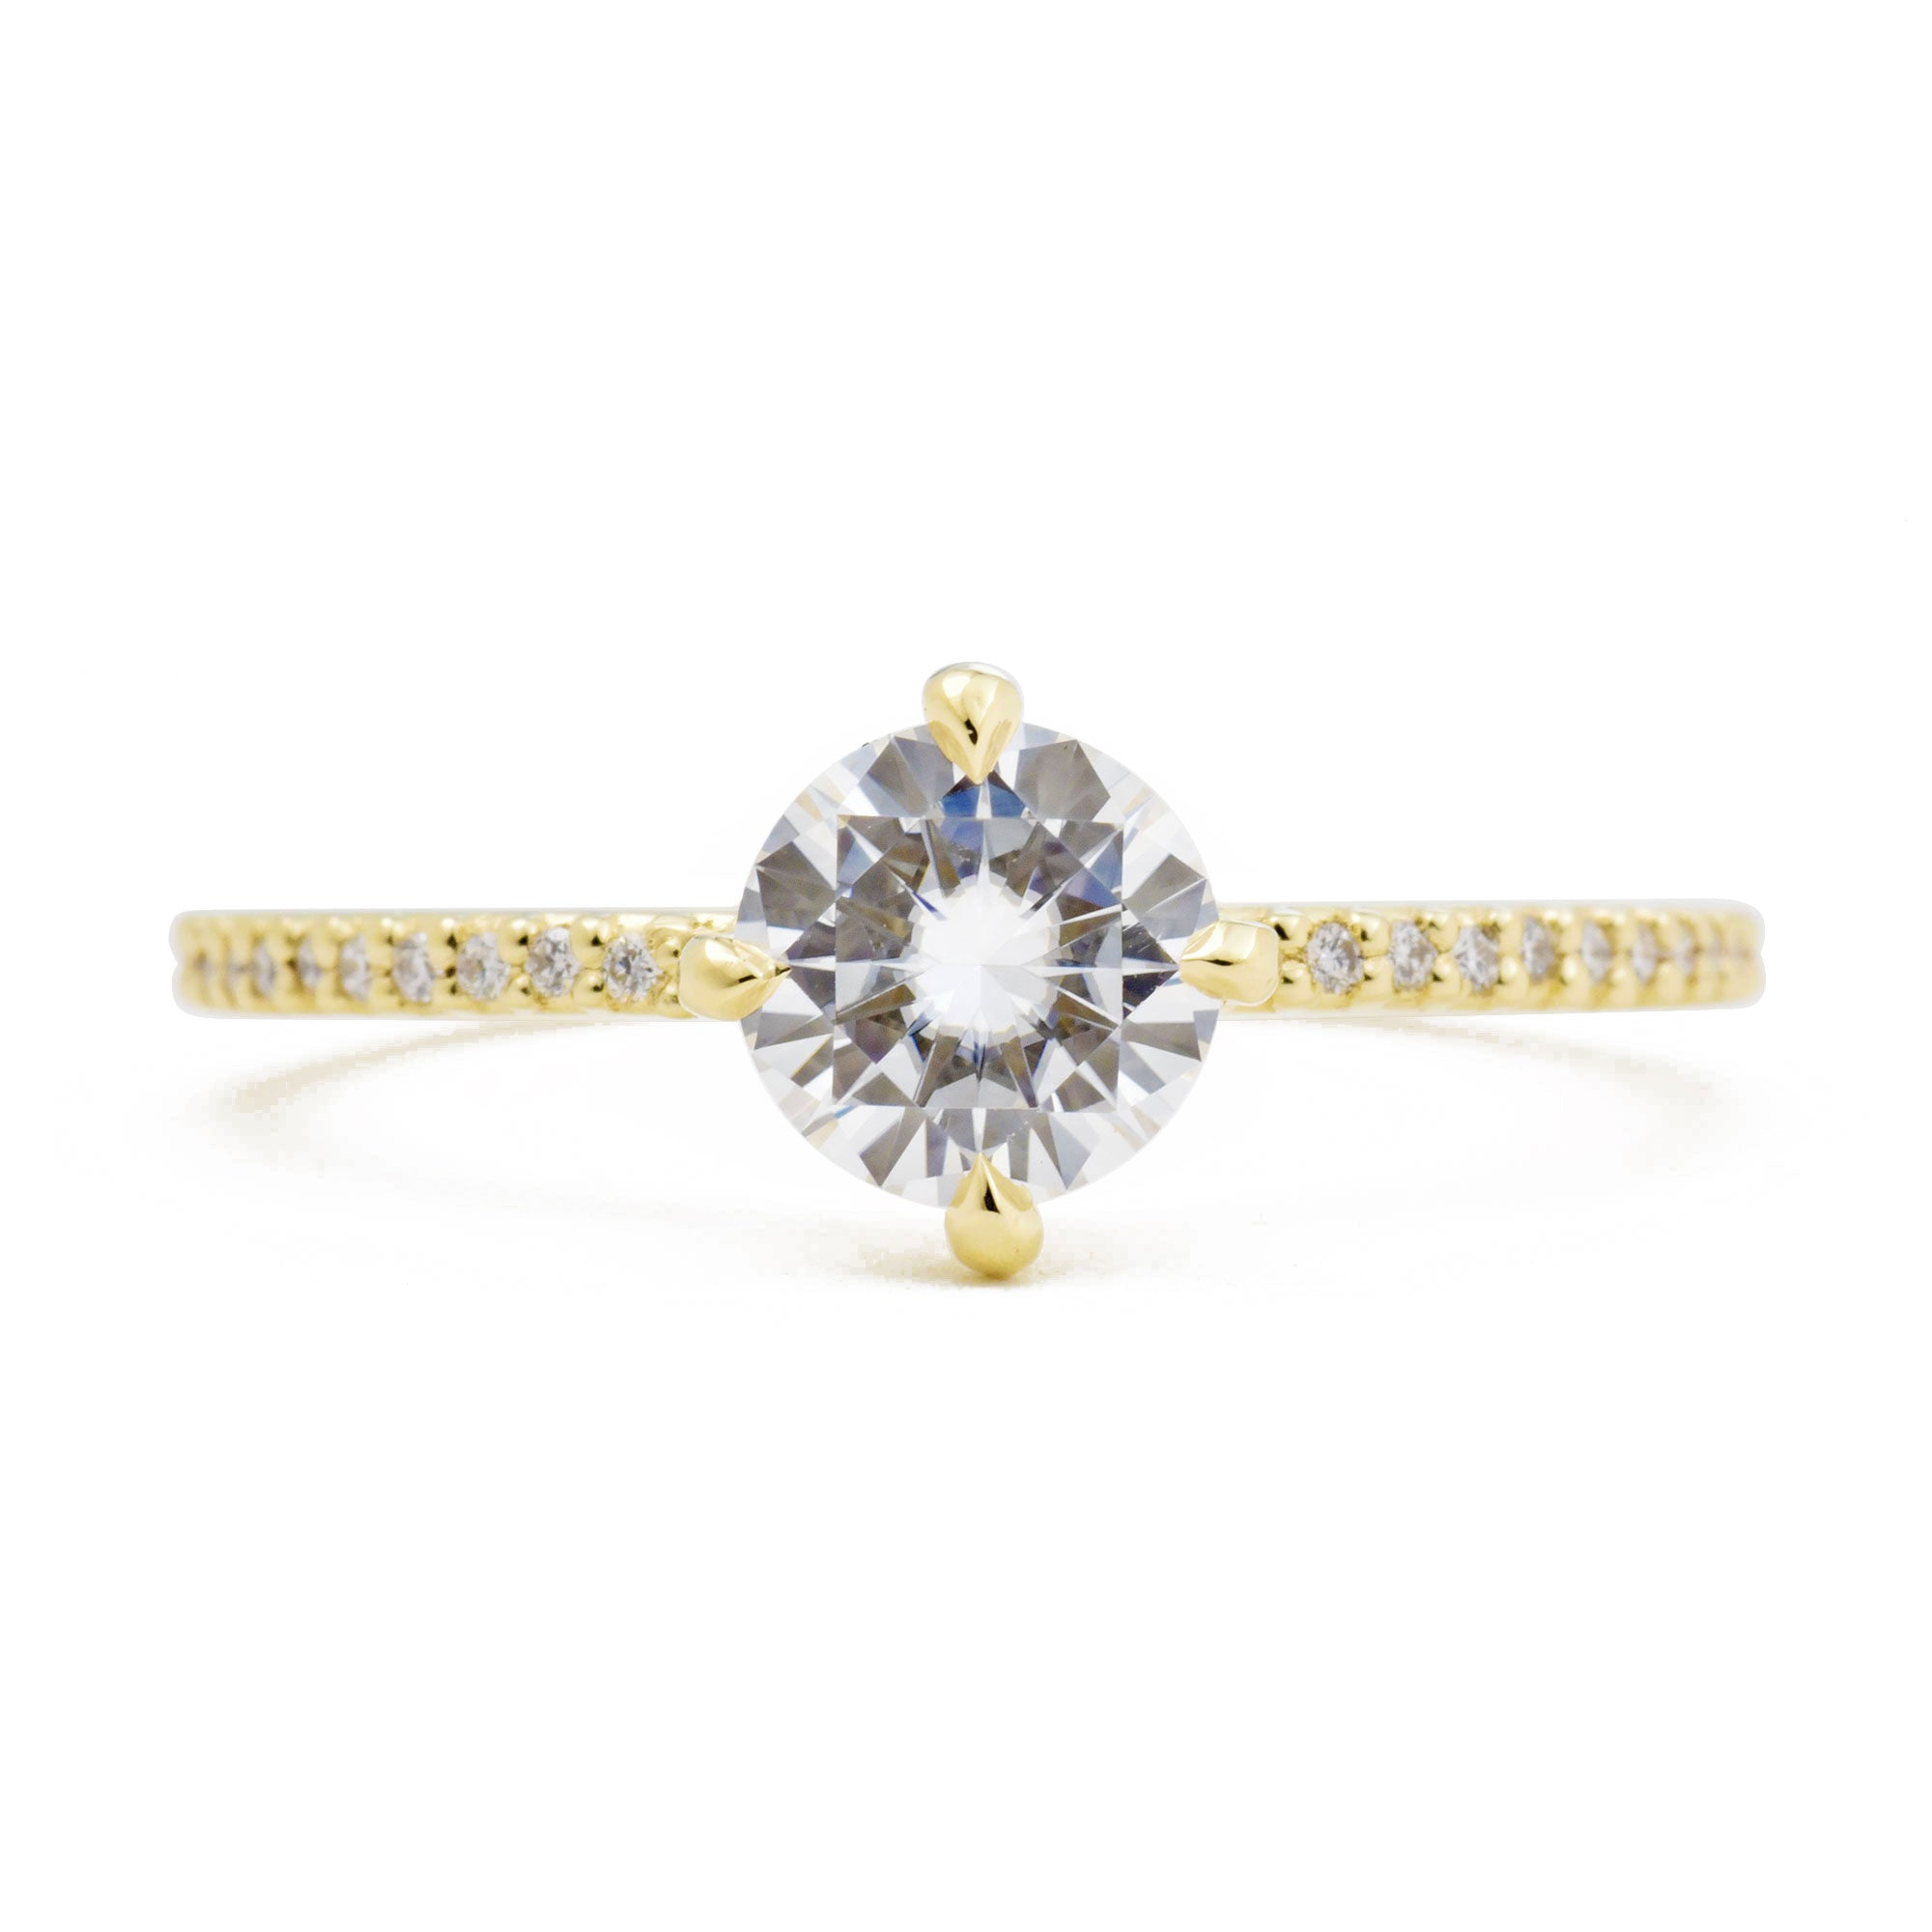 Vera 1ct Moissanite Solitaire Engagement Ring with Pavé Diamonds